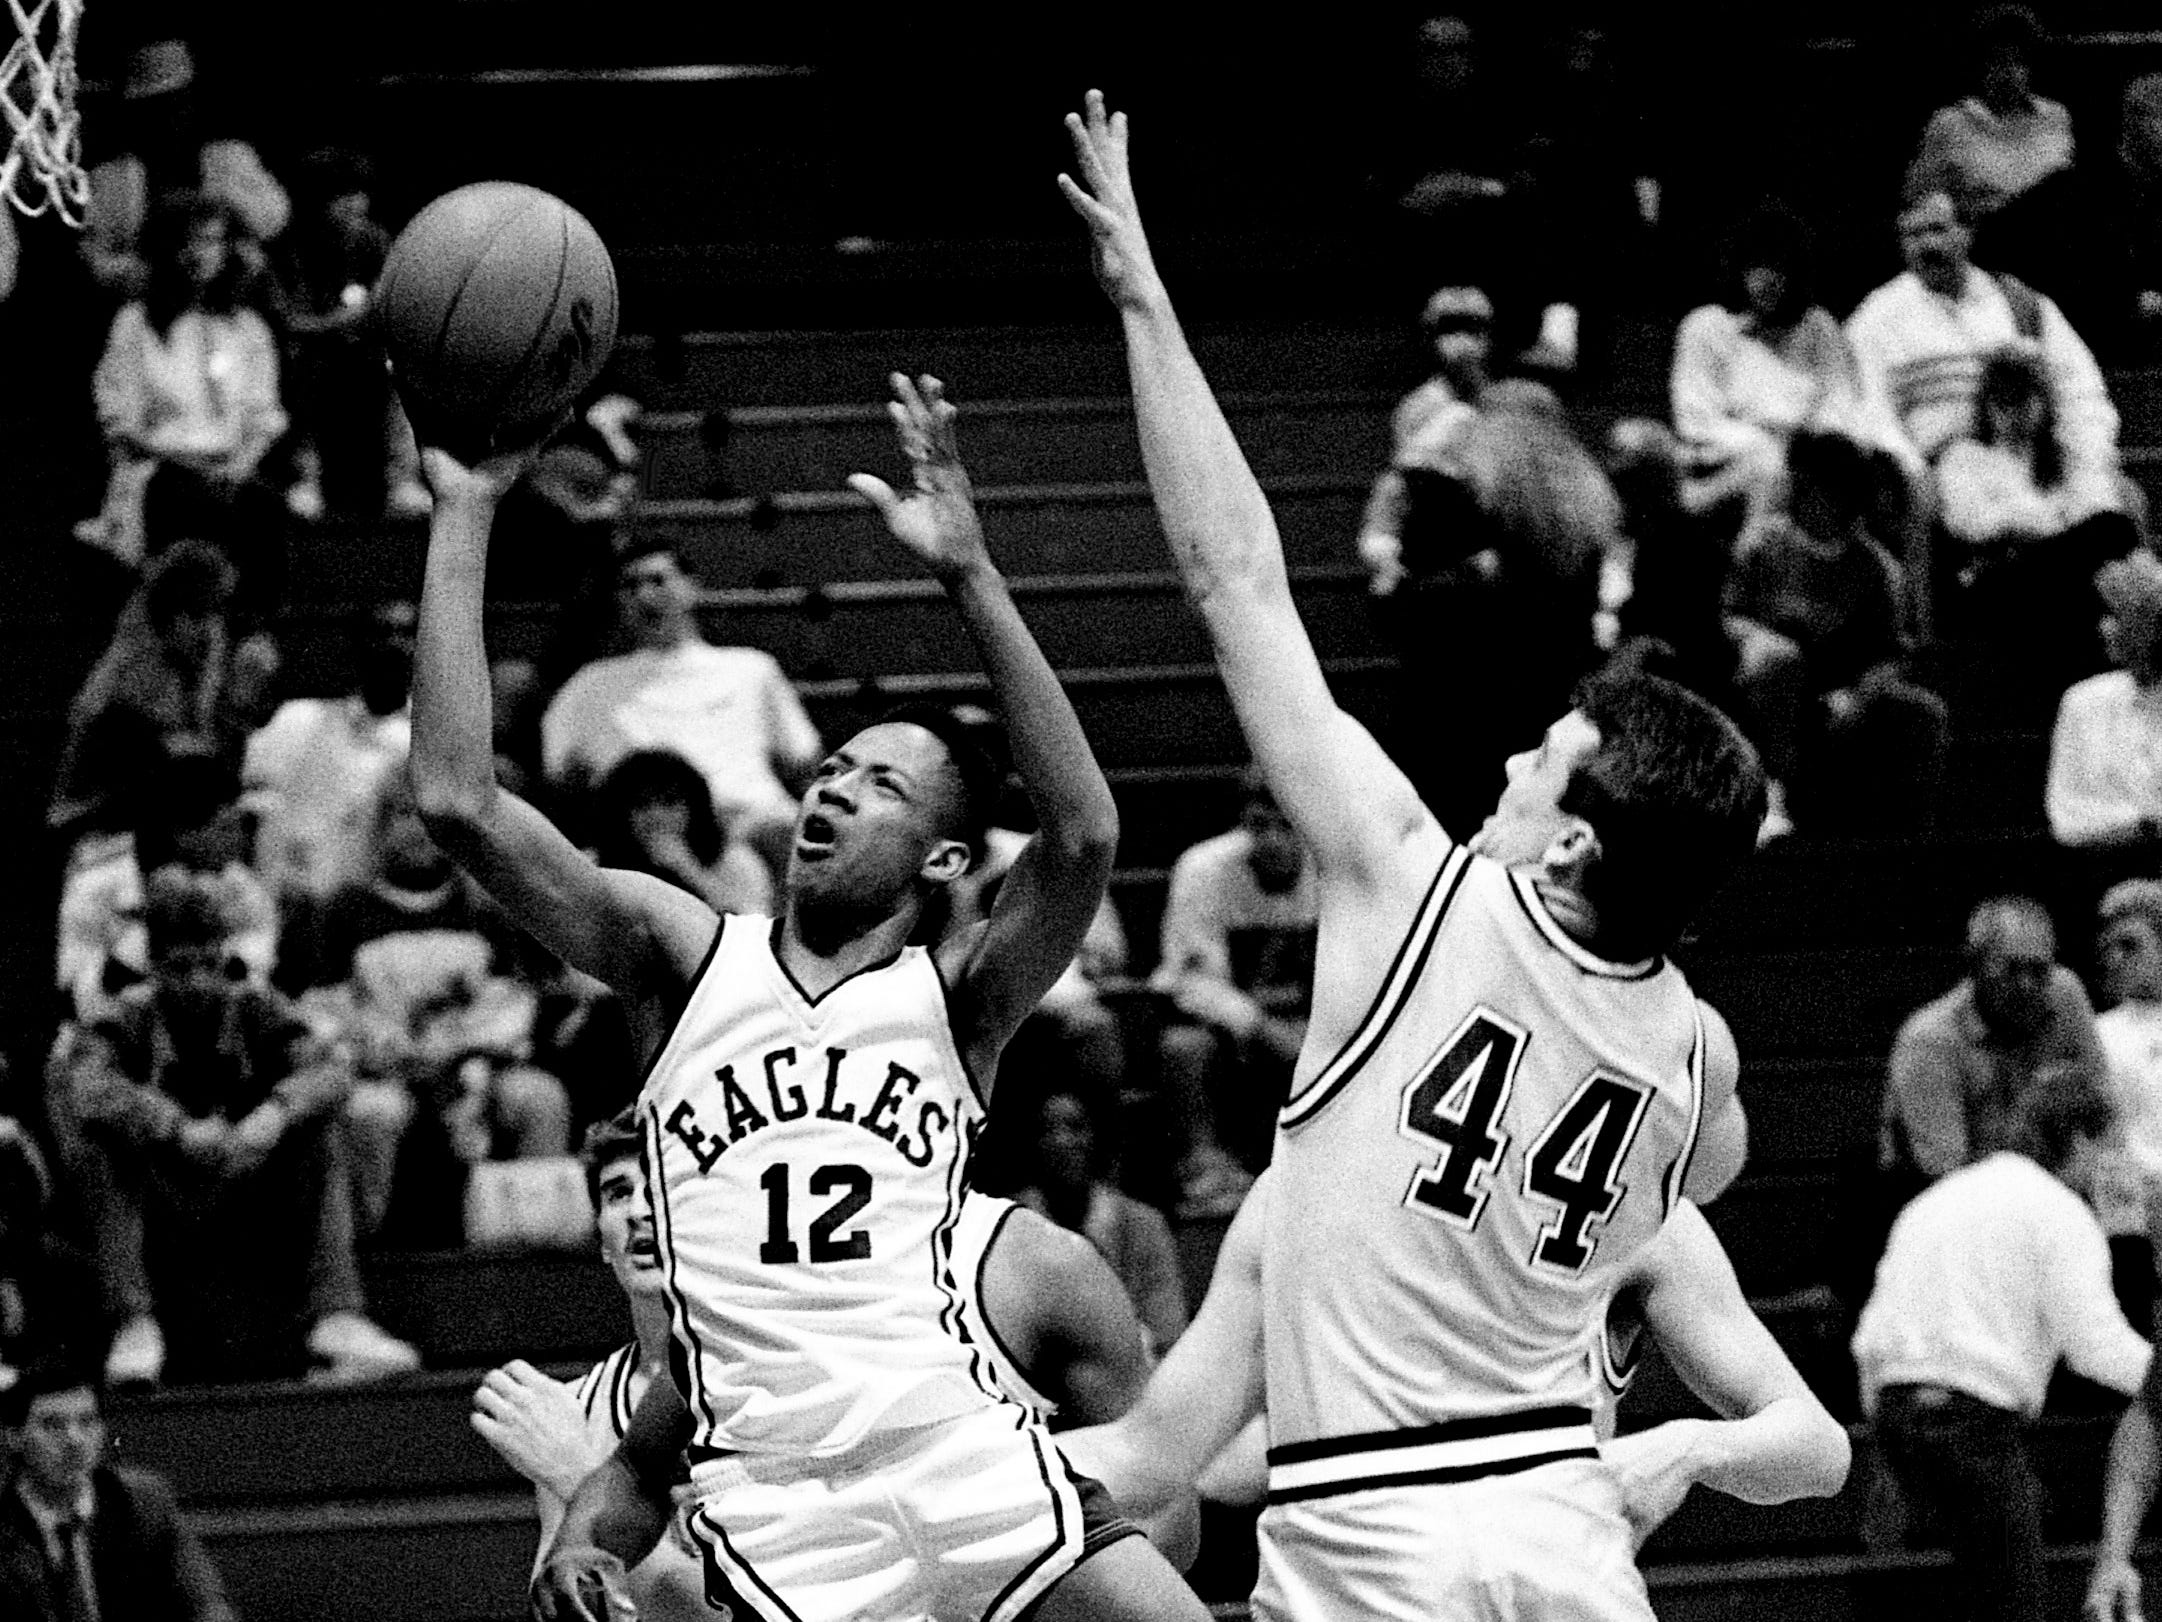 Clarksville Northeast High's Corey Parks (12) slips by Mt. Juliet High's Joby Homesley (44) for two of his 15 points in Northeast's 67-55 victory in Region 5-AAA action at Gallatin High School on Feb. 28, 1989.